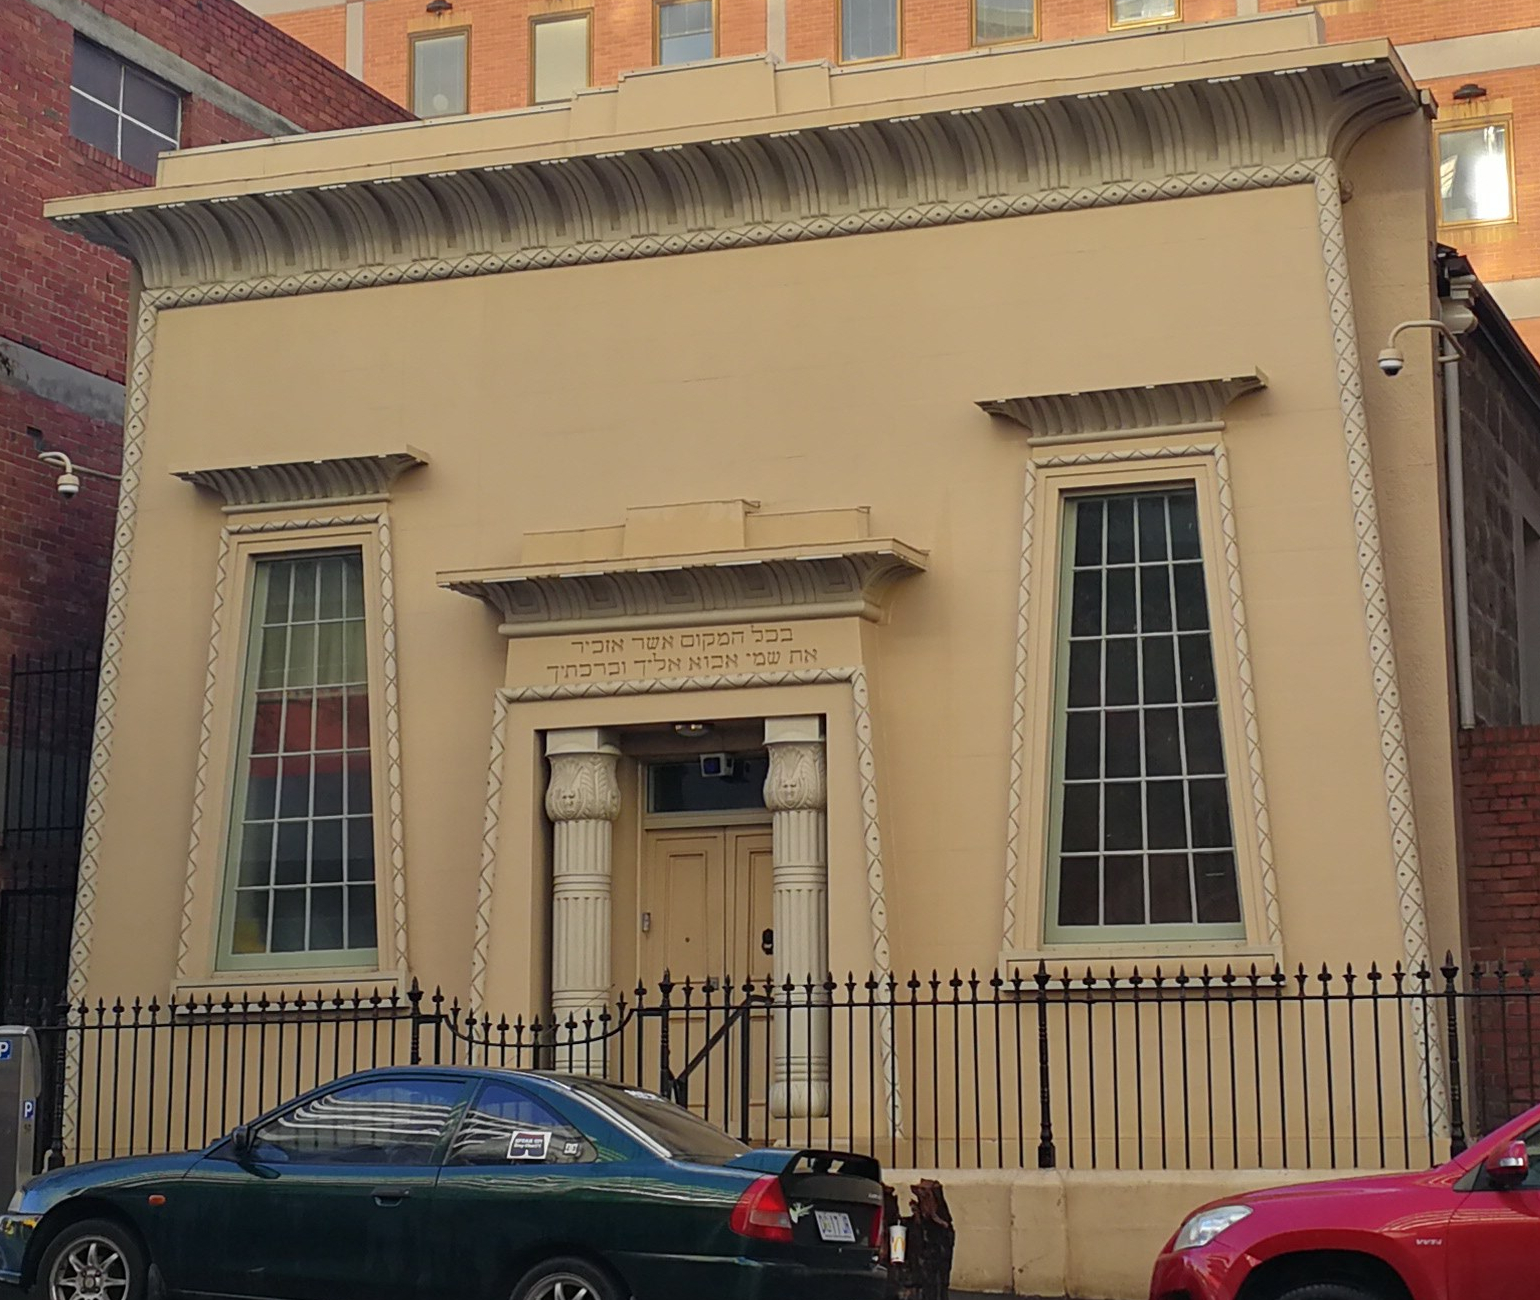 Australia's oldest synagogue